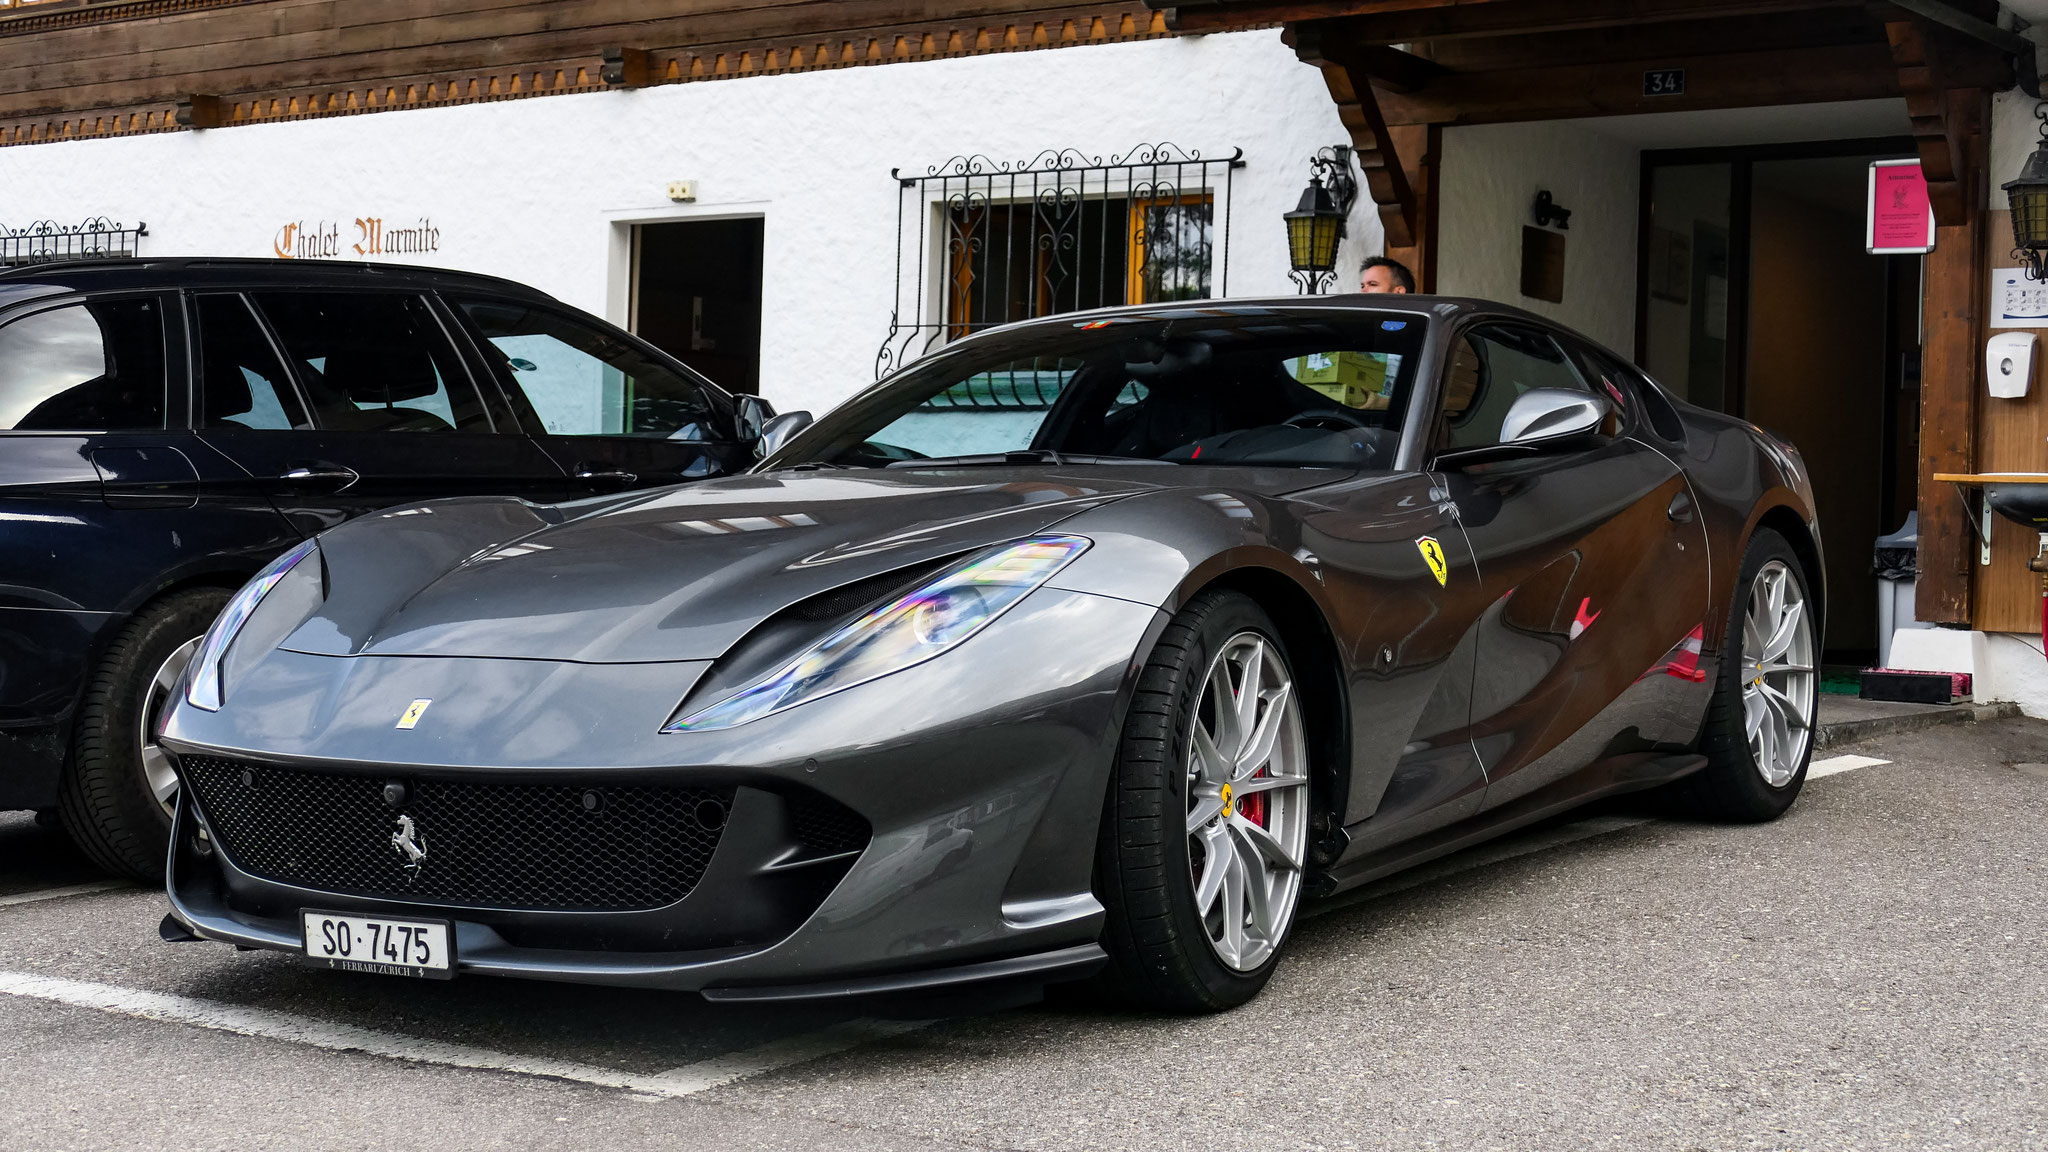 Ferrari 812 Superfast - SO-7475 (CH)